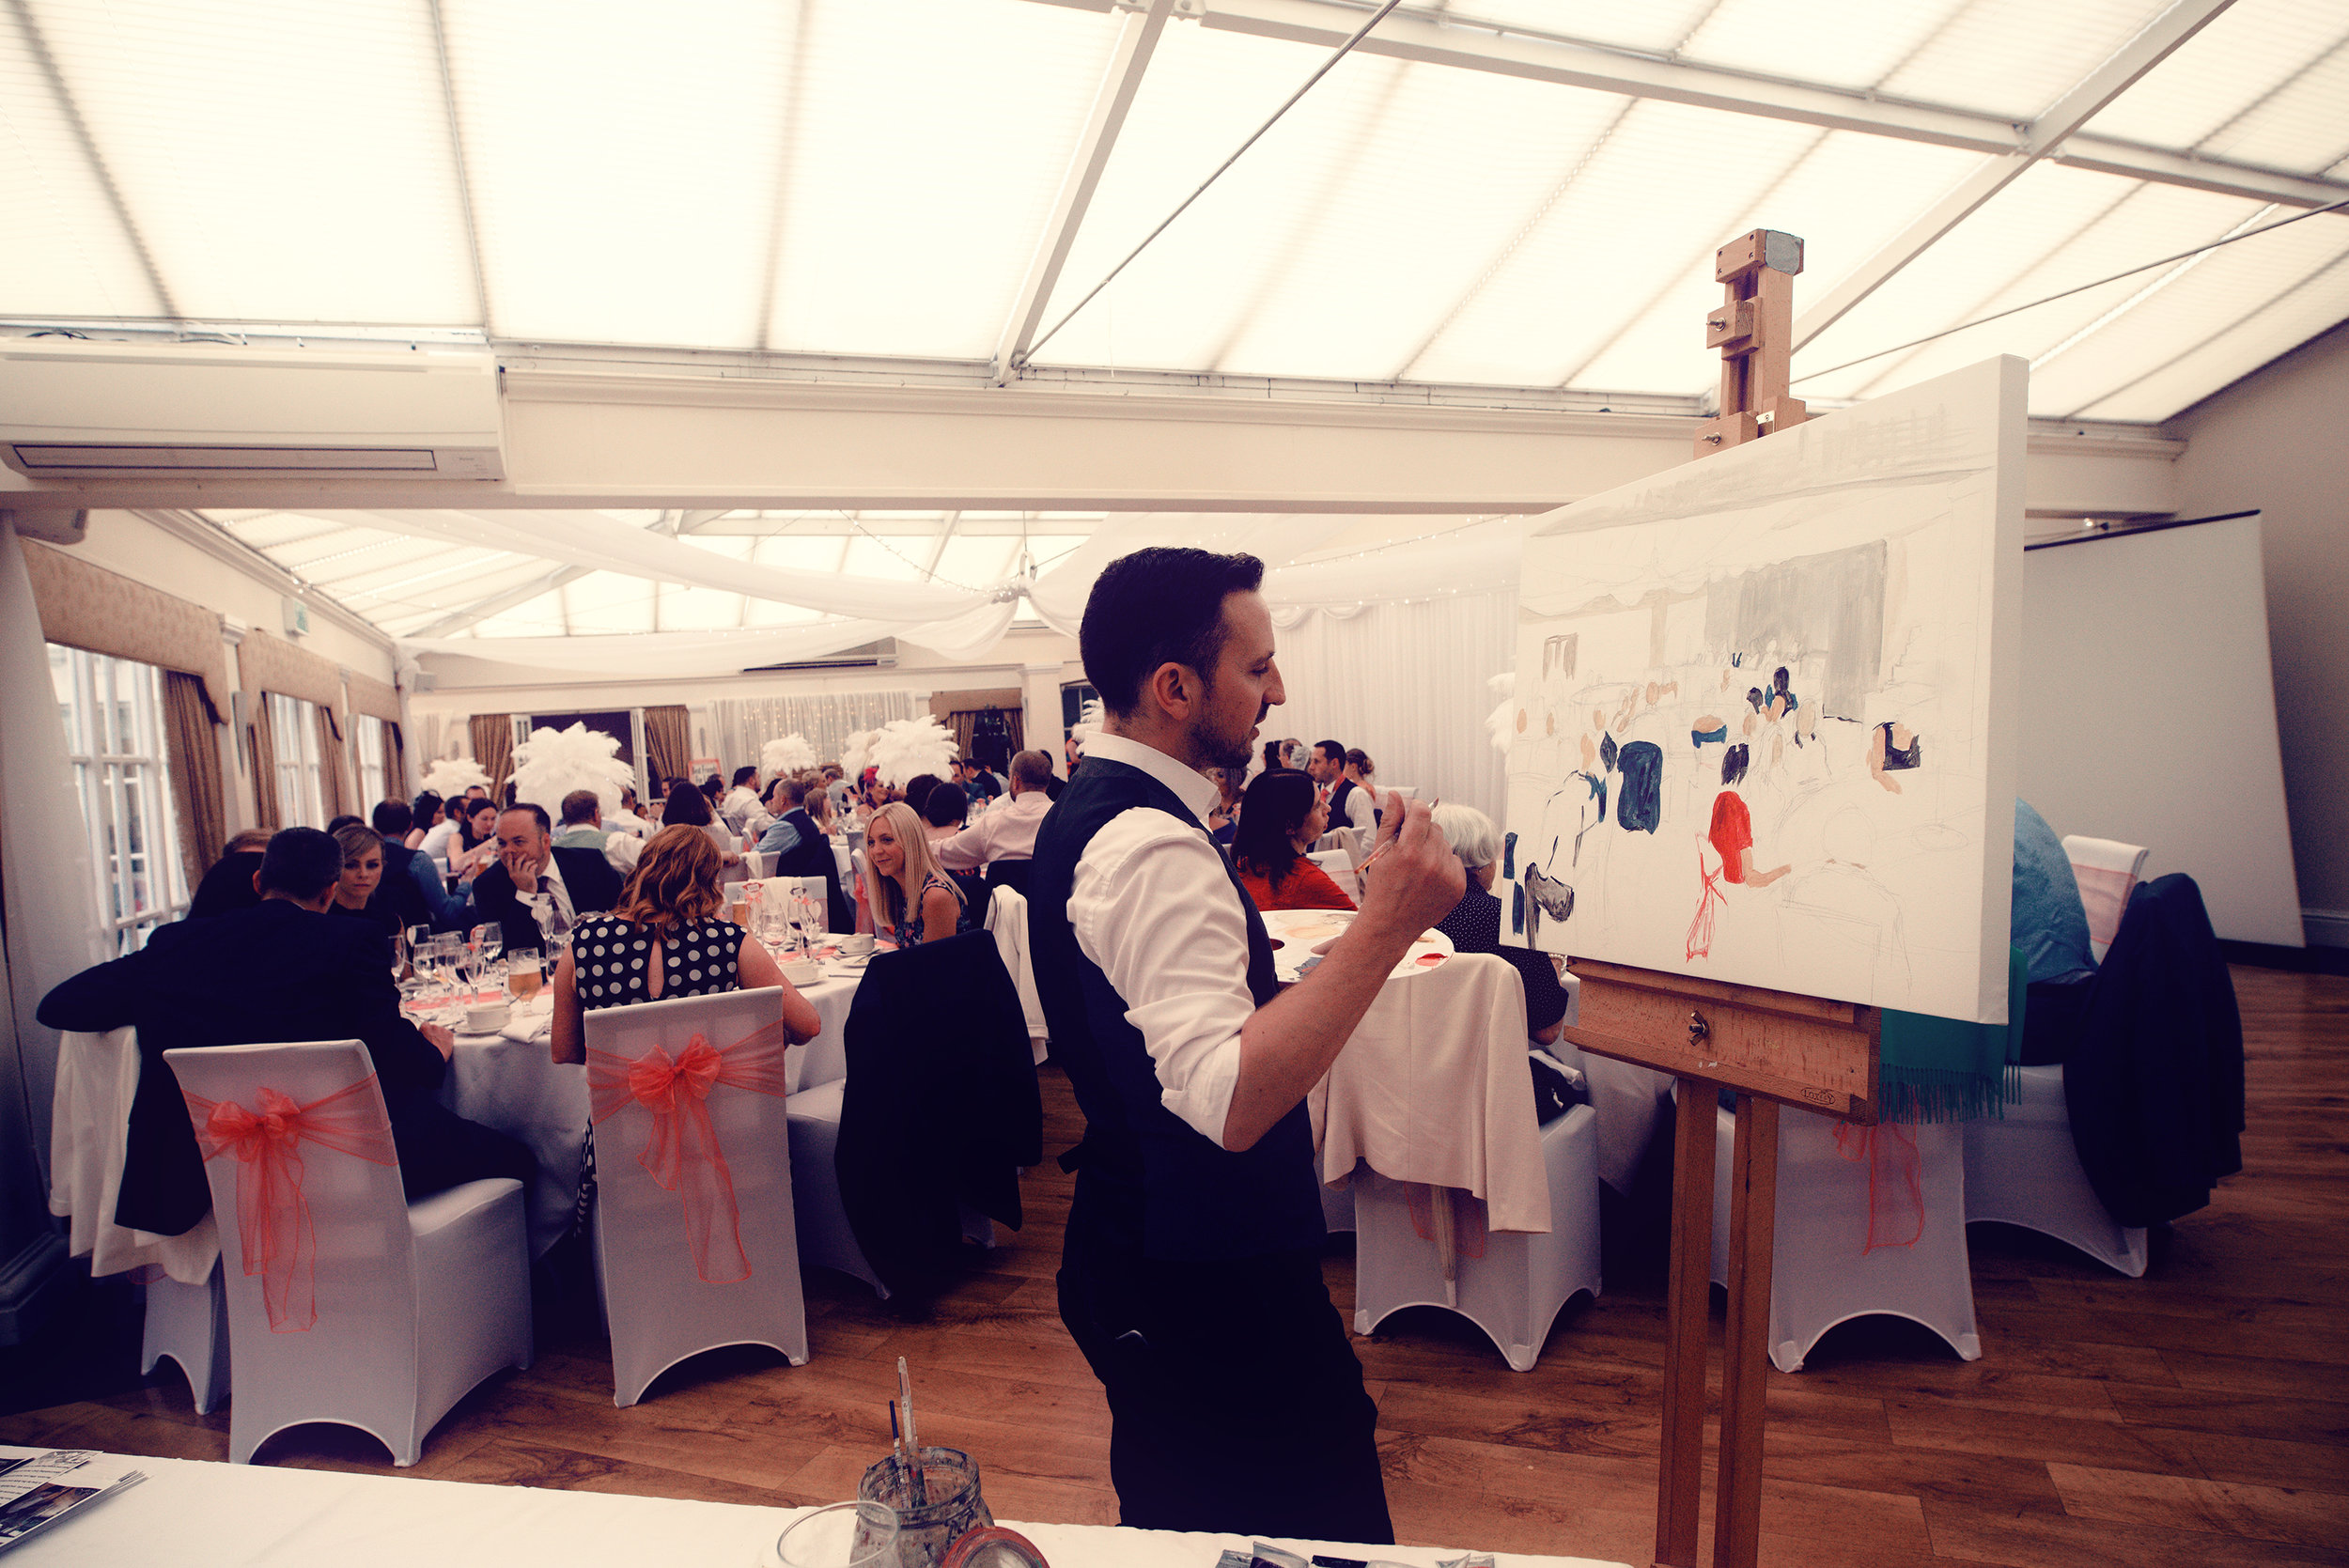 Mr Stuart Barkley Live wedding painter capturing the wedding breakfast